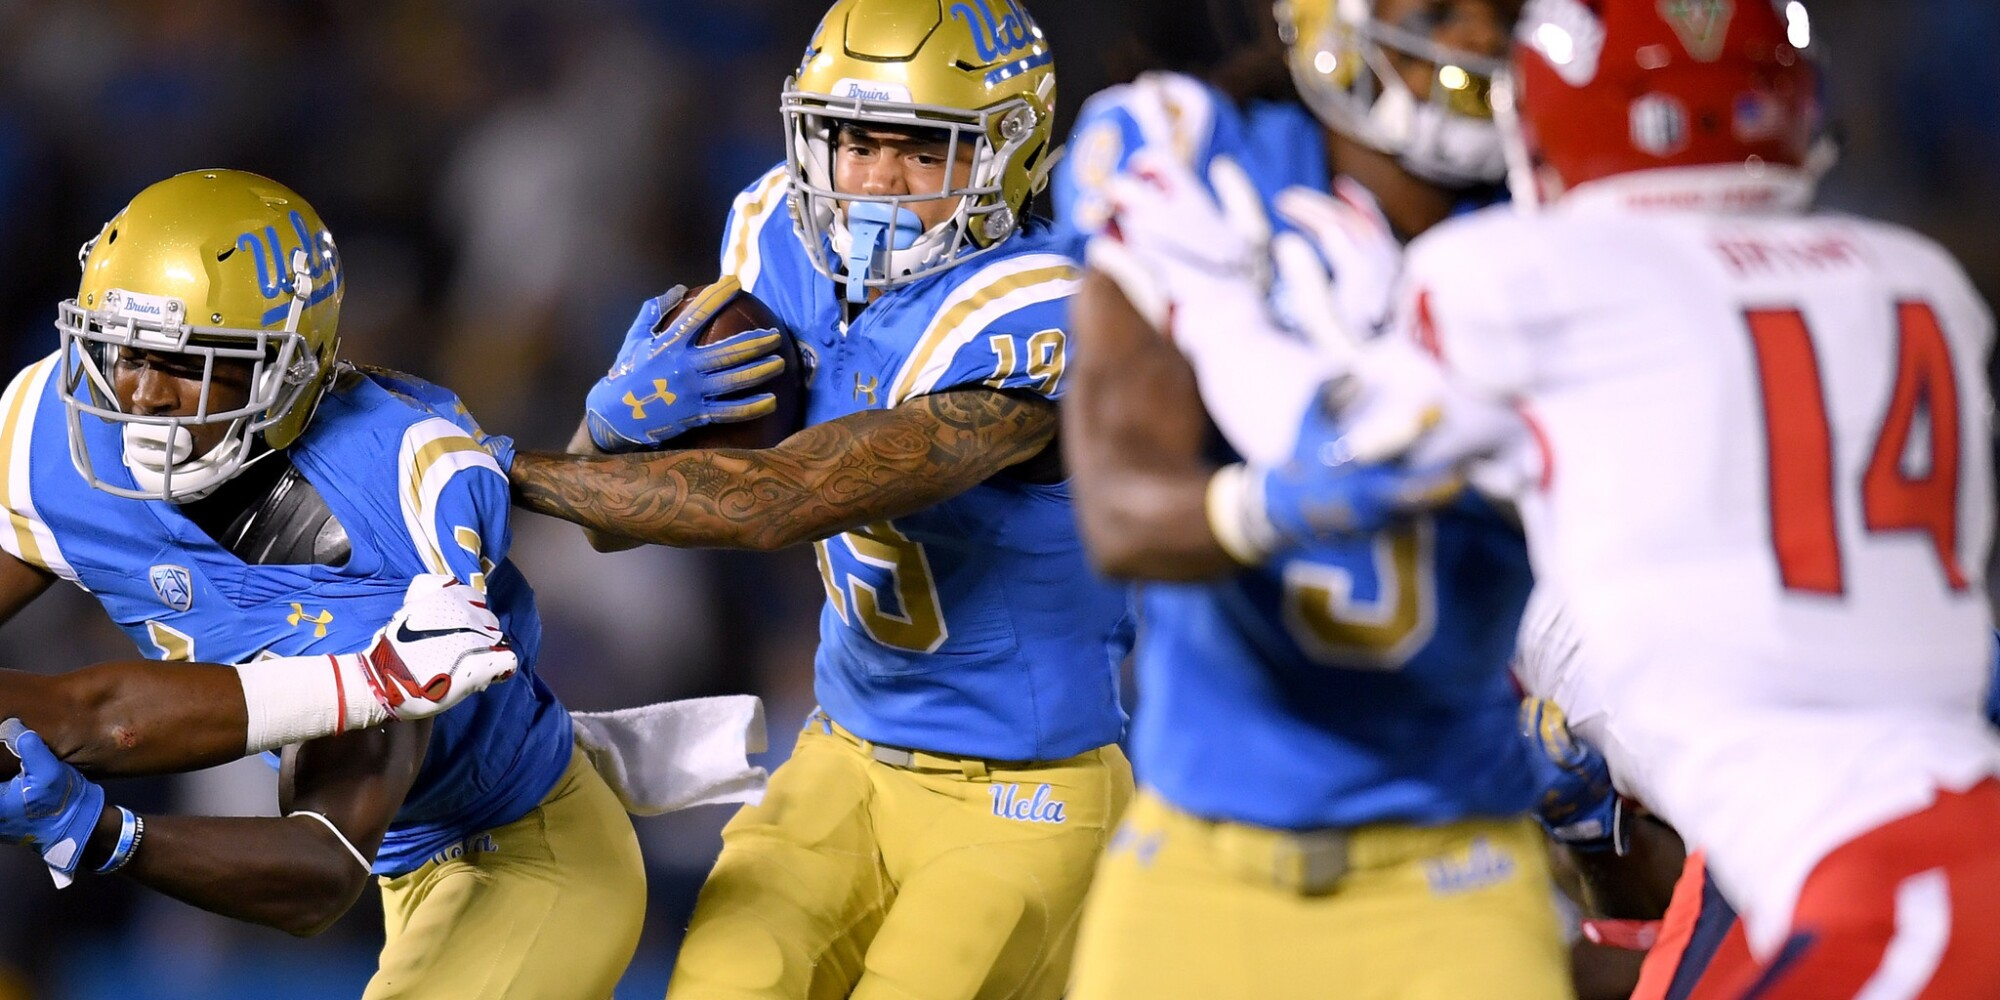 UCLA vs. Colorado: Colorado 38, UCLA 16